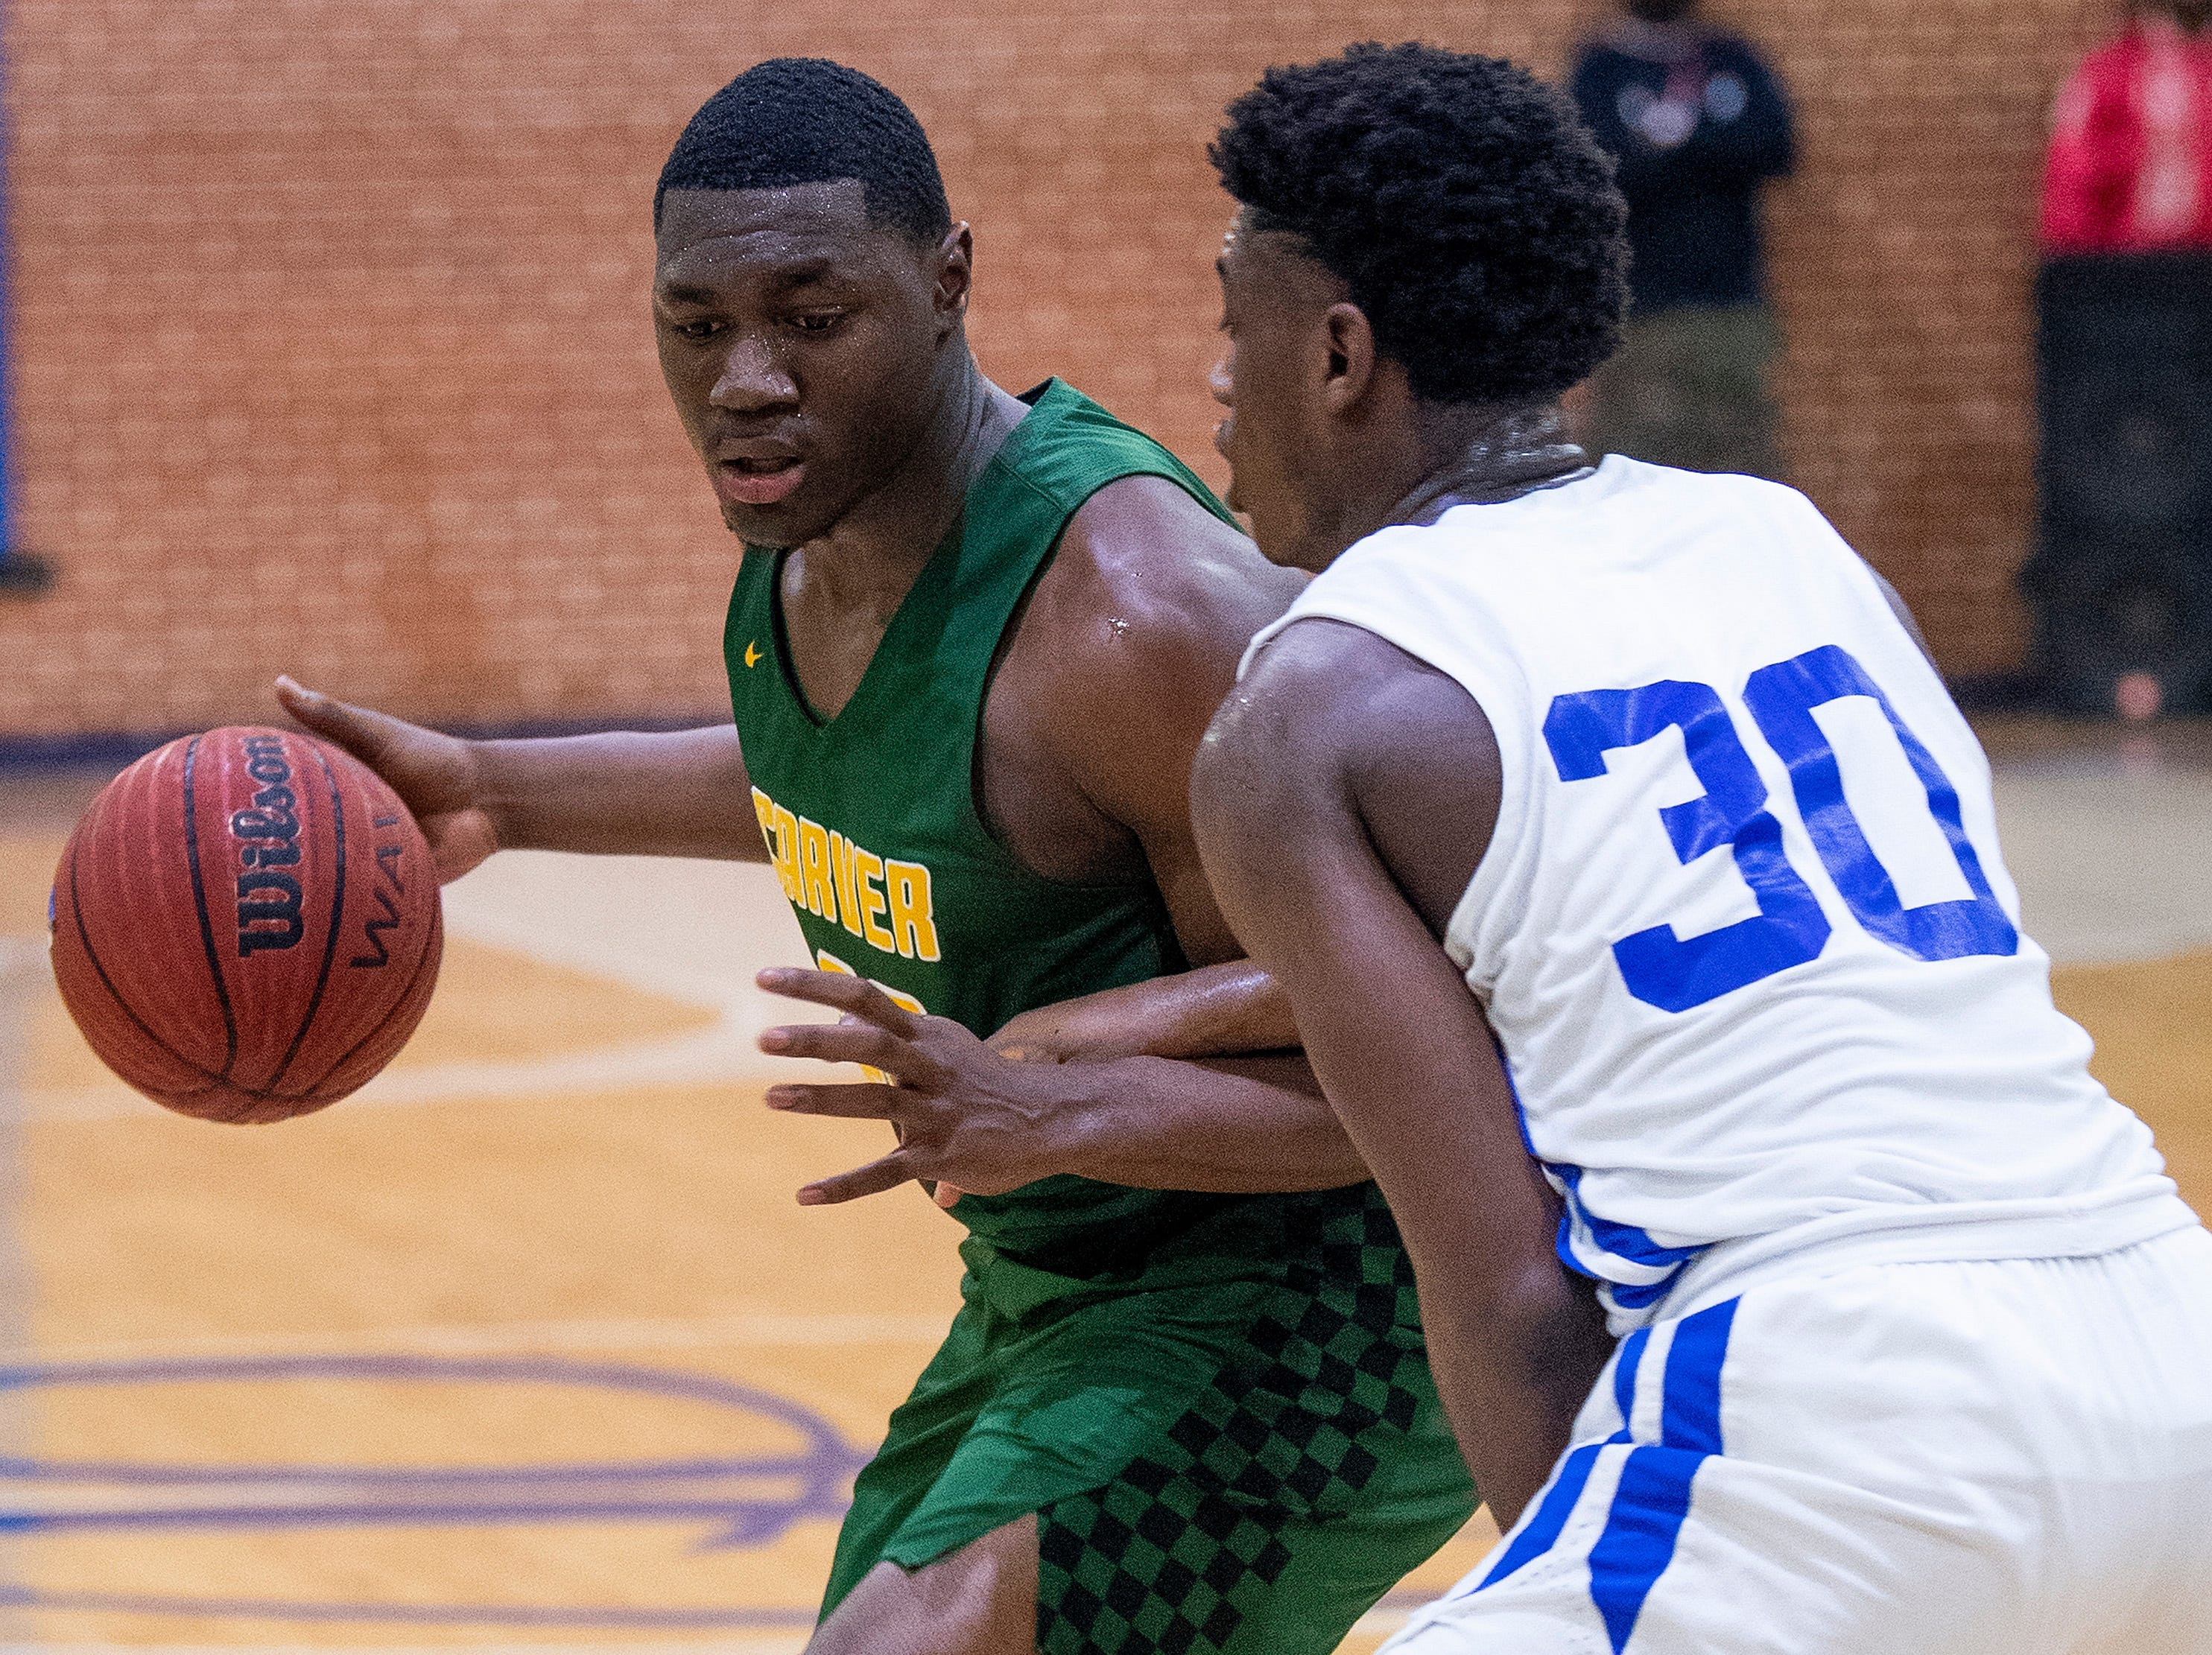 Carver's Jereme Robinson (20) and Lanier's Rongie Gordon (30) at the Lanier campus in Montgomery, Ala., on Friday January 11, 2019.